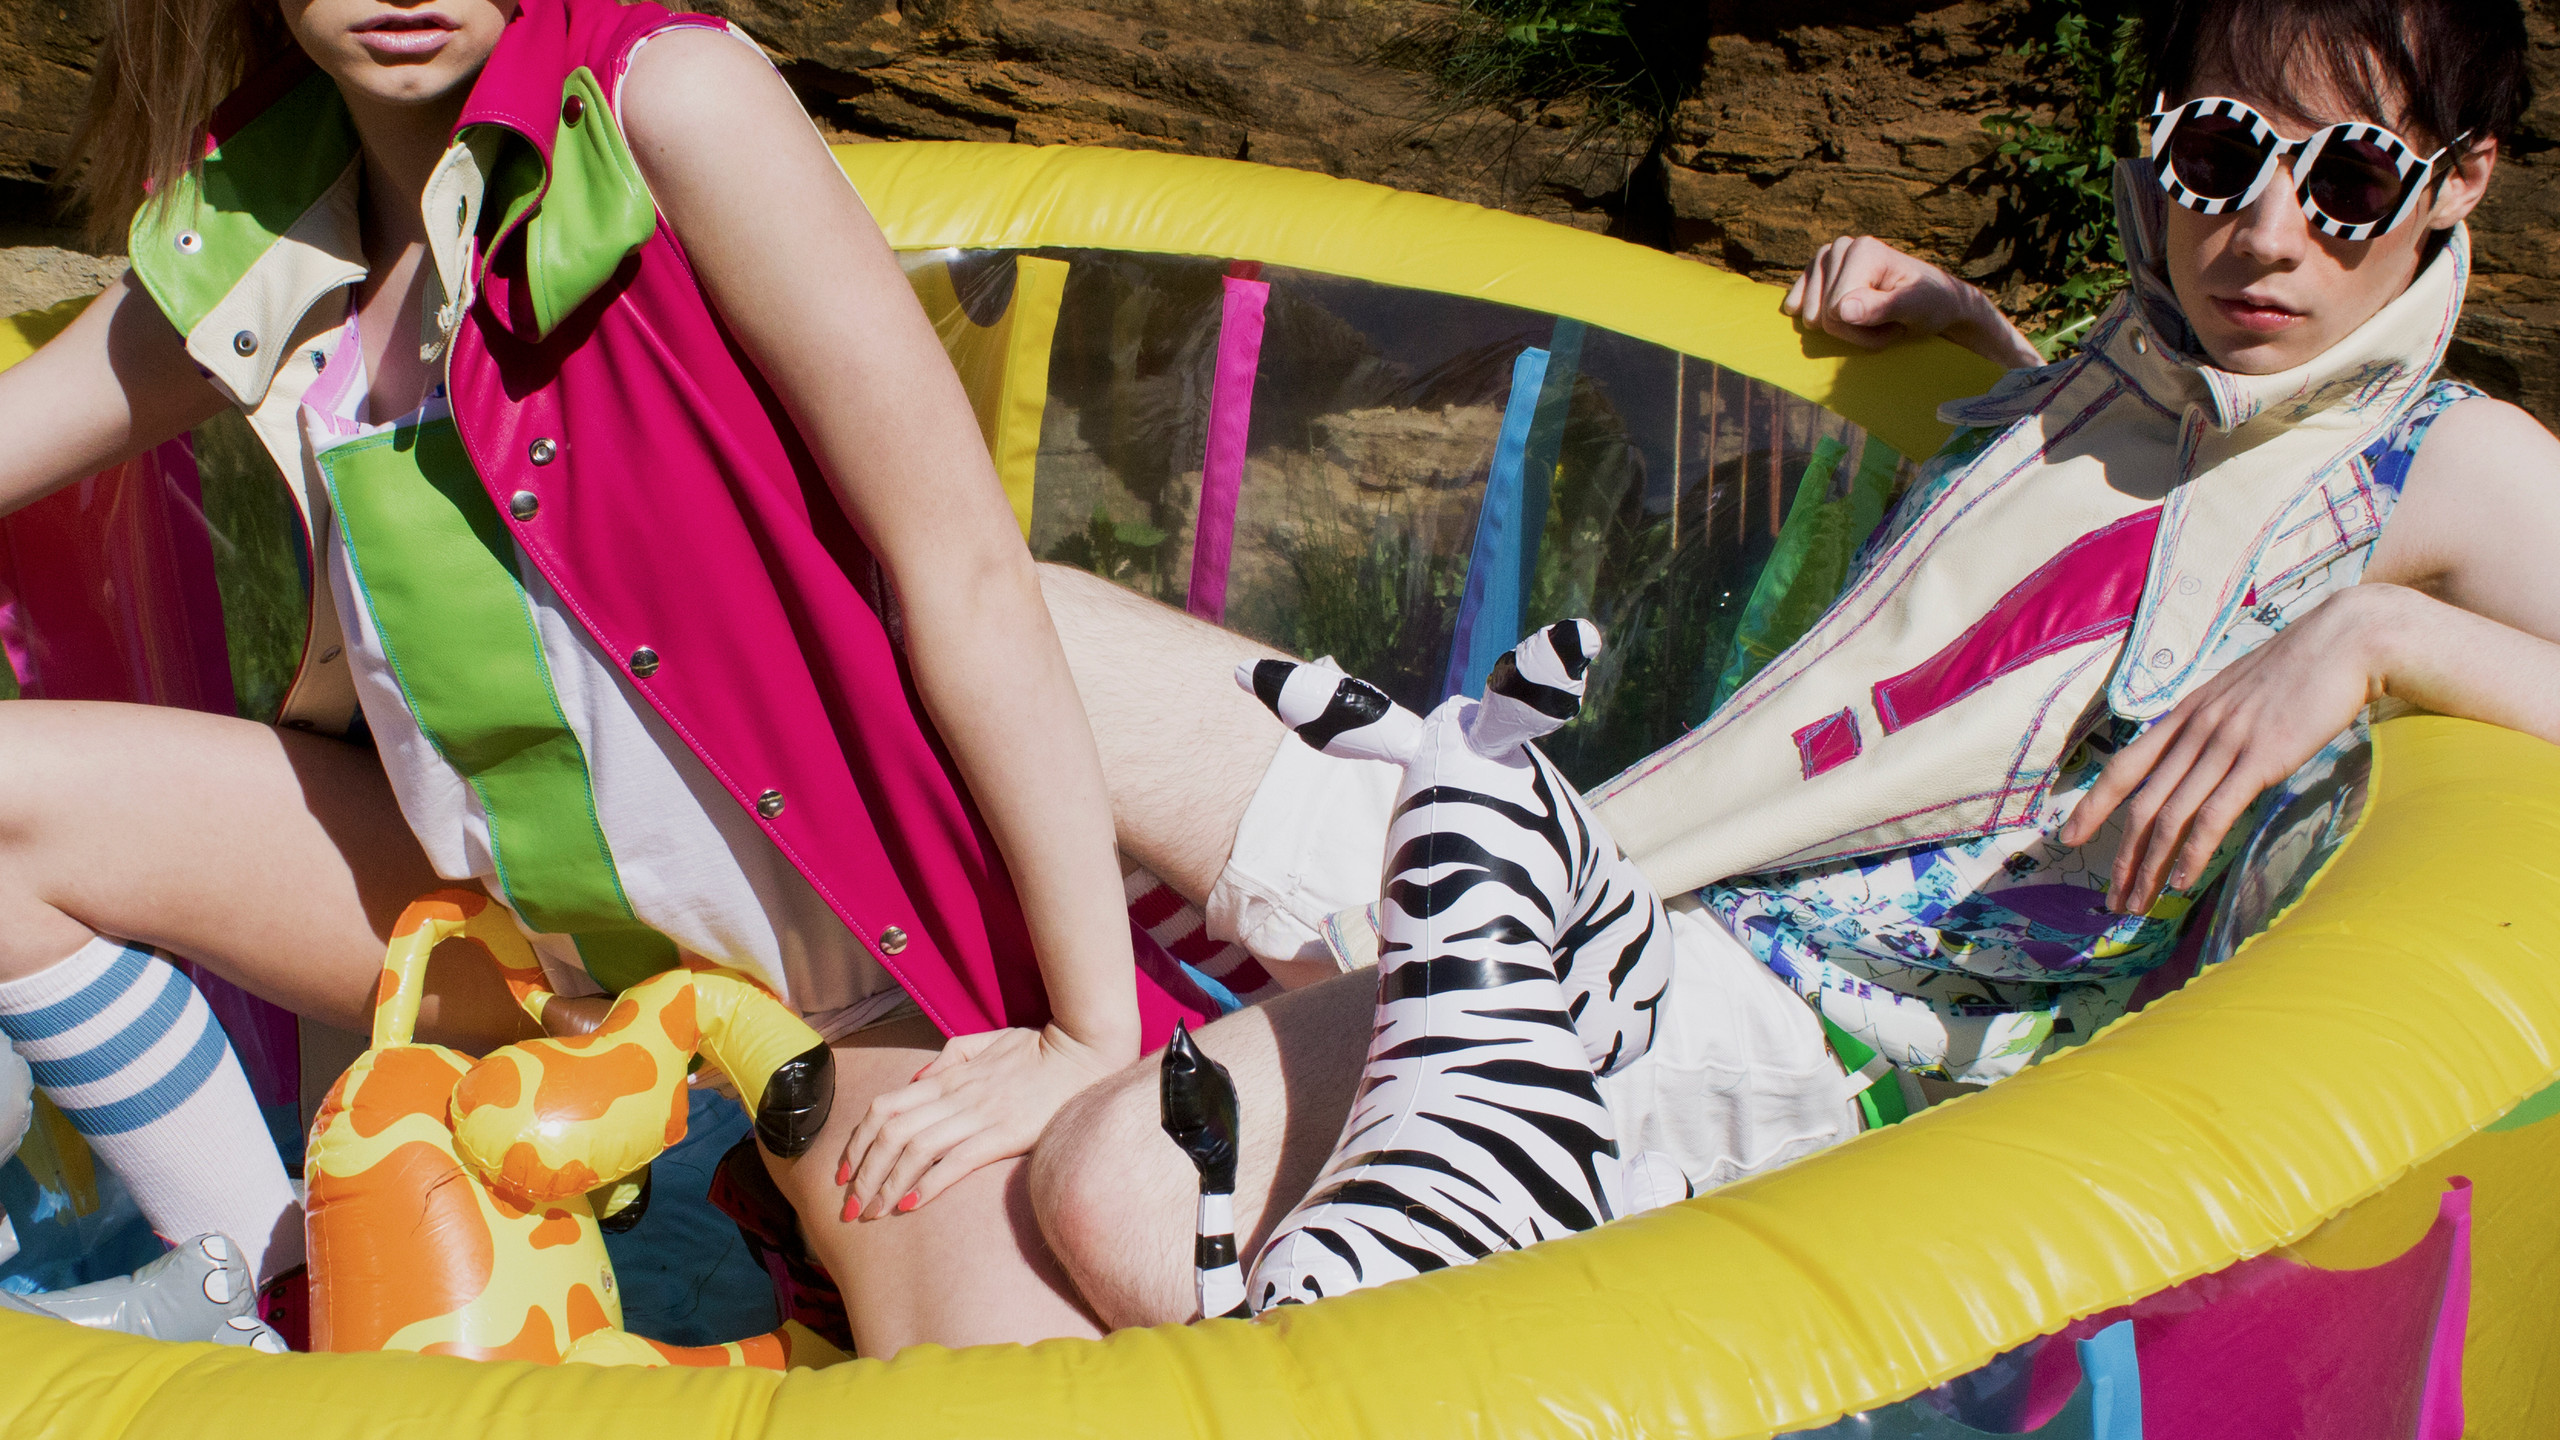 Pool Party, 2013.  Clothes for X Claim Nation by Peter Marsh.  Creative Director, Peter Marsh.  Photographer Natalie Marsh.  Model Rebecca Metcalf and Peter Marsh.